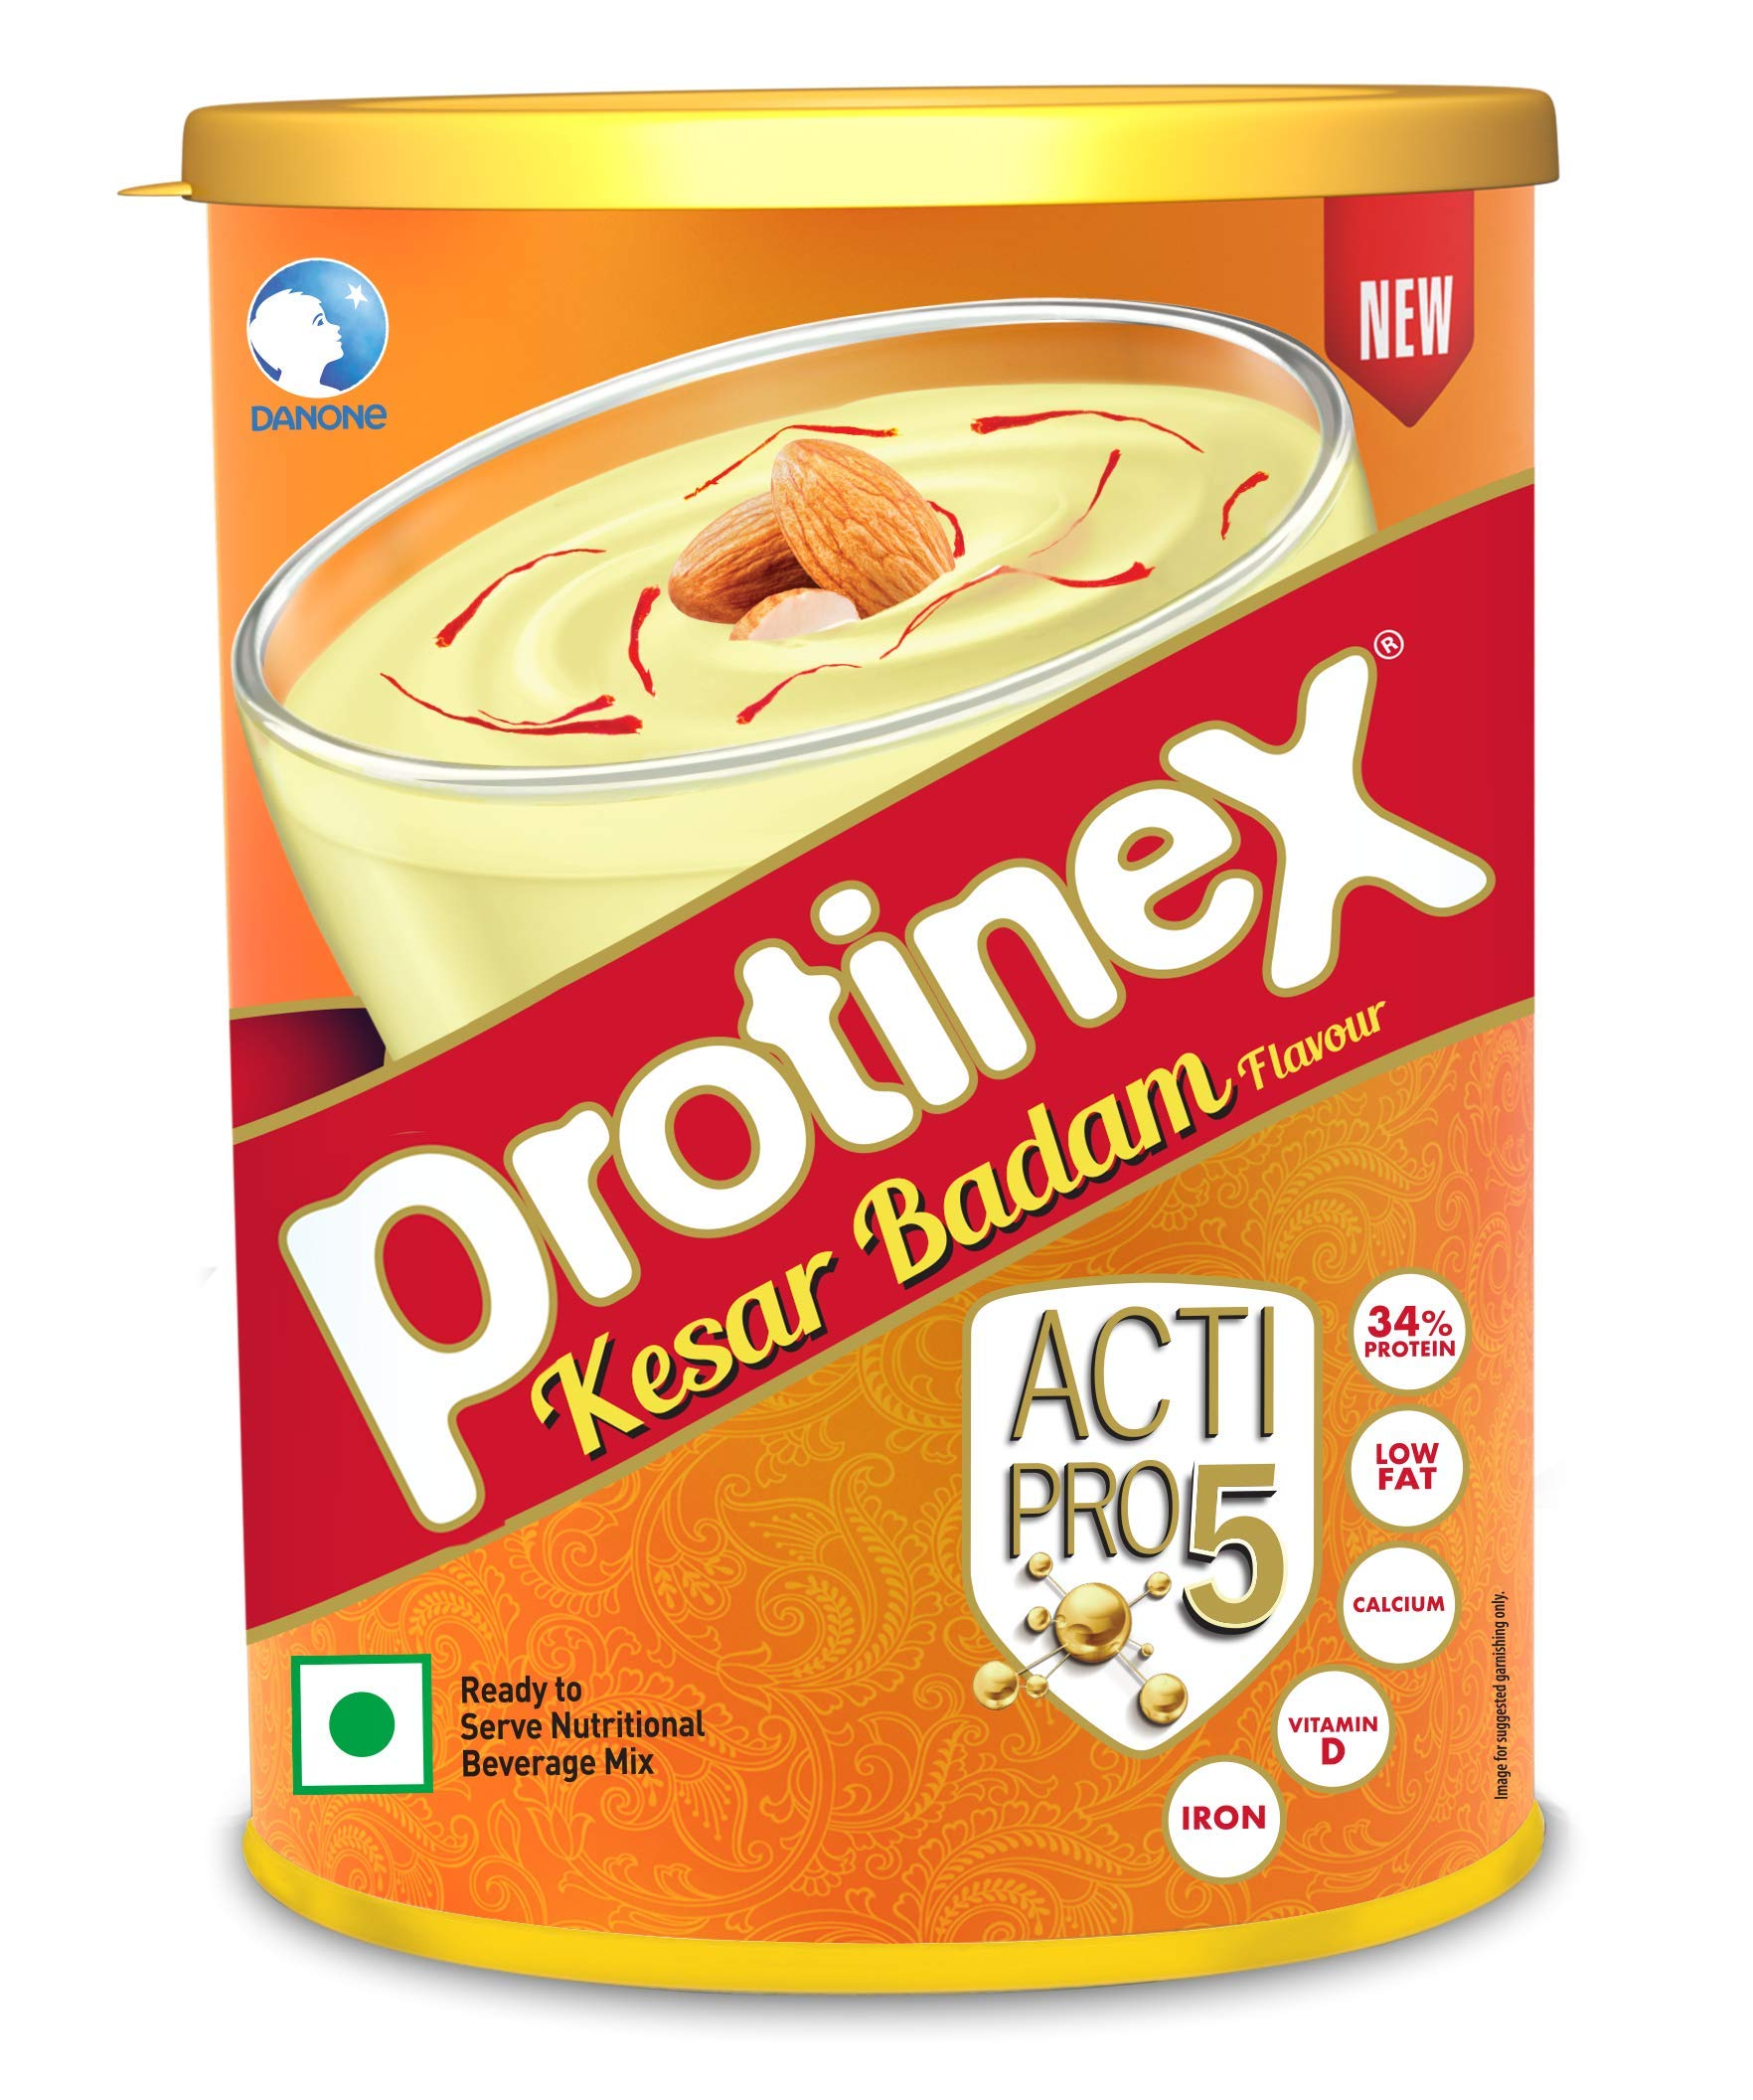 Protinex Kesar Badam with Actipro 5 for Good Muscle Health, 250g product image